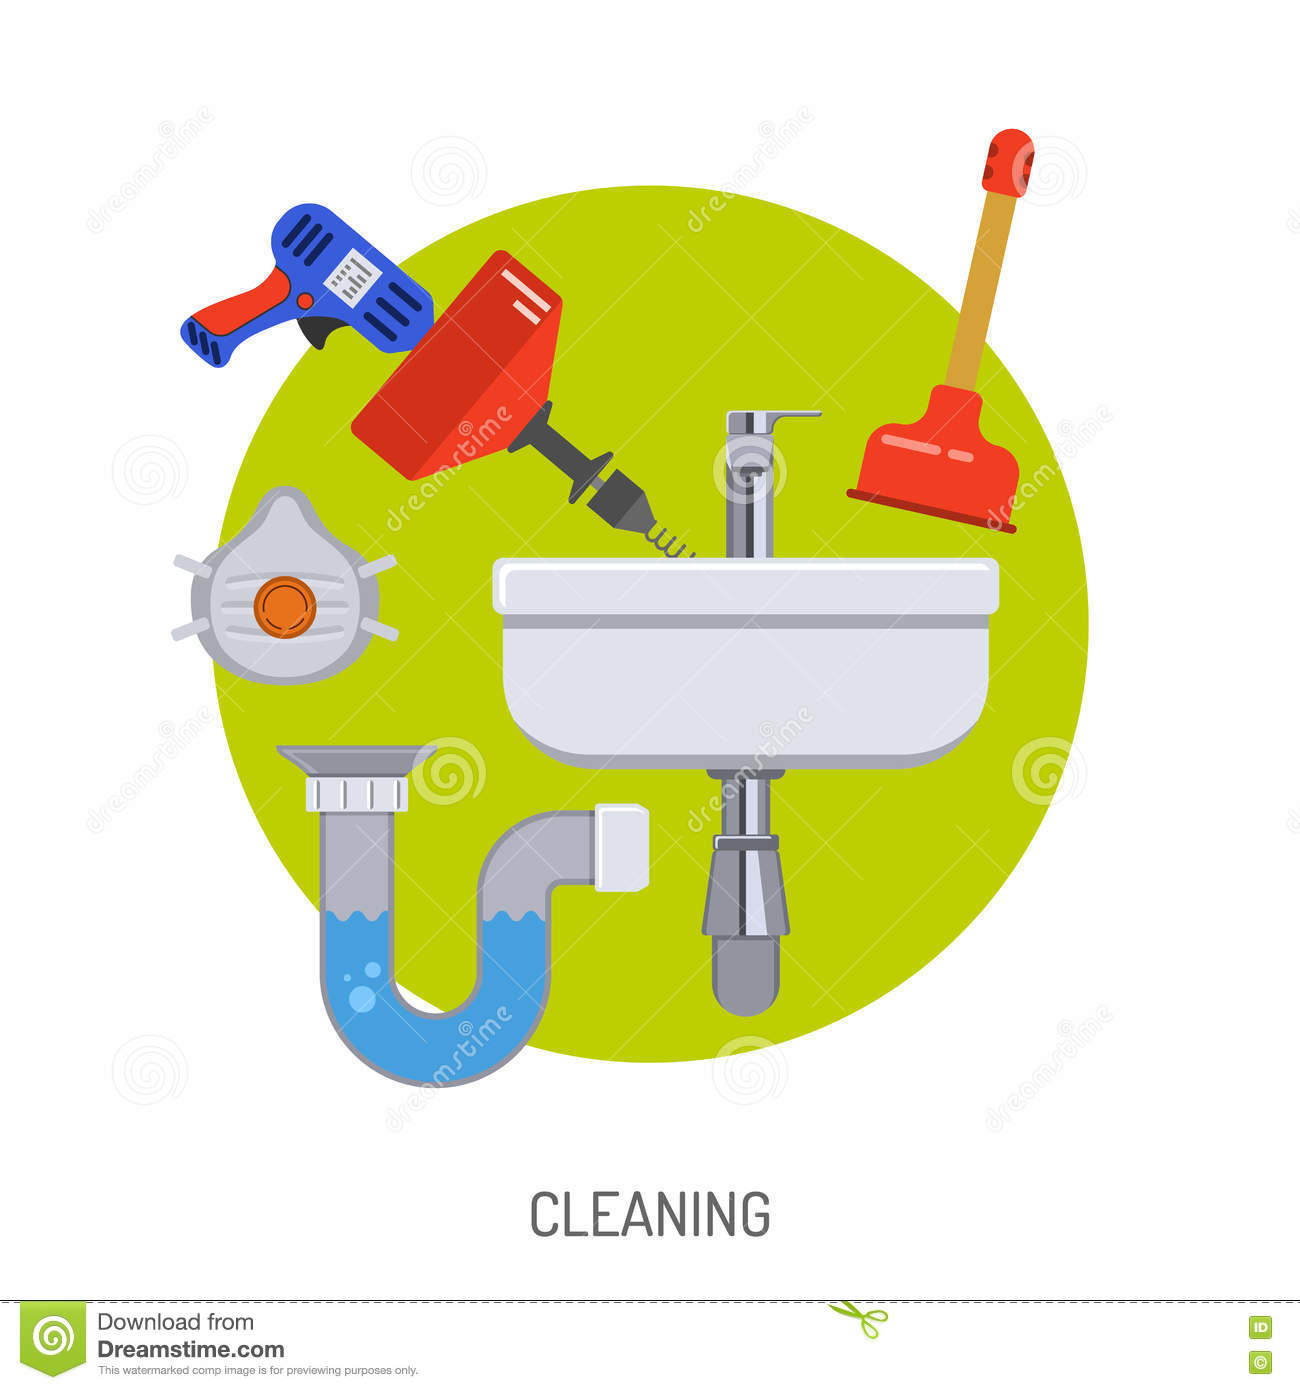 Concrete Invoice additionally Templates Client List besides Plumbing Service Concept moreover Clean Water Act in addition Carte Cadeau Mikaza. on plumbing logo templates